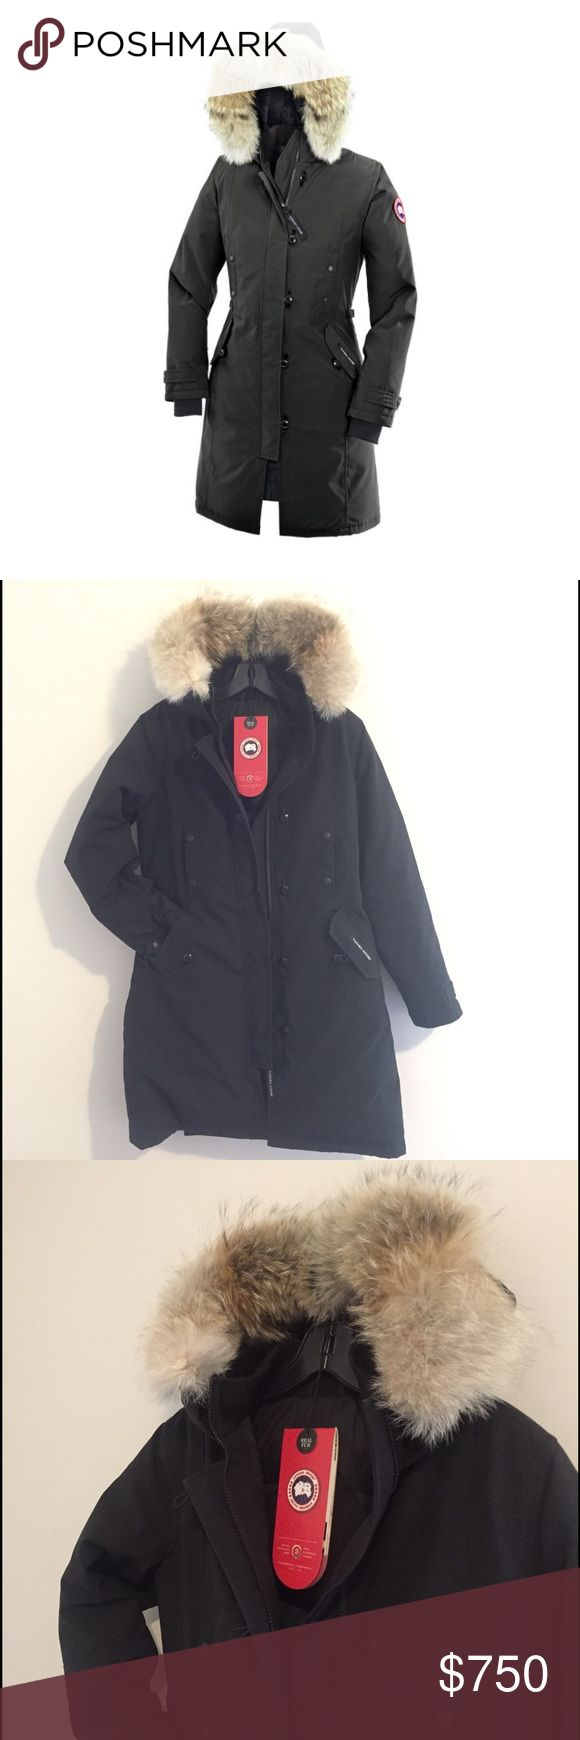 Canada Goose Kensington Parka size small I am selling a gorgeous Canada Goose Kensington Parka! I bought it in December of 2016 for a trip to Russia, so it has been worn about 8 days. It is in perfect condition. It fits beautifully. There are cinch straps along the side to provide a more form fitting fit. The tail of the jacket also buttons providing more movement which is extremely helpful! You are not confined by the jacket around your knees! I was warm in -20 F with the jacket and a…